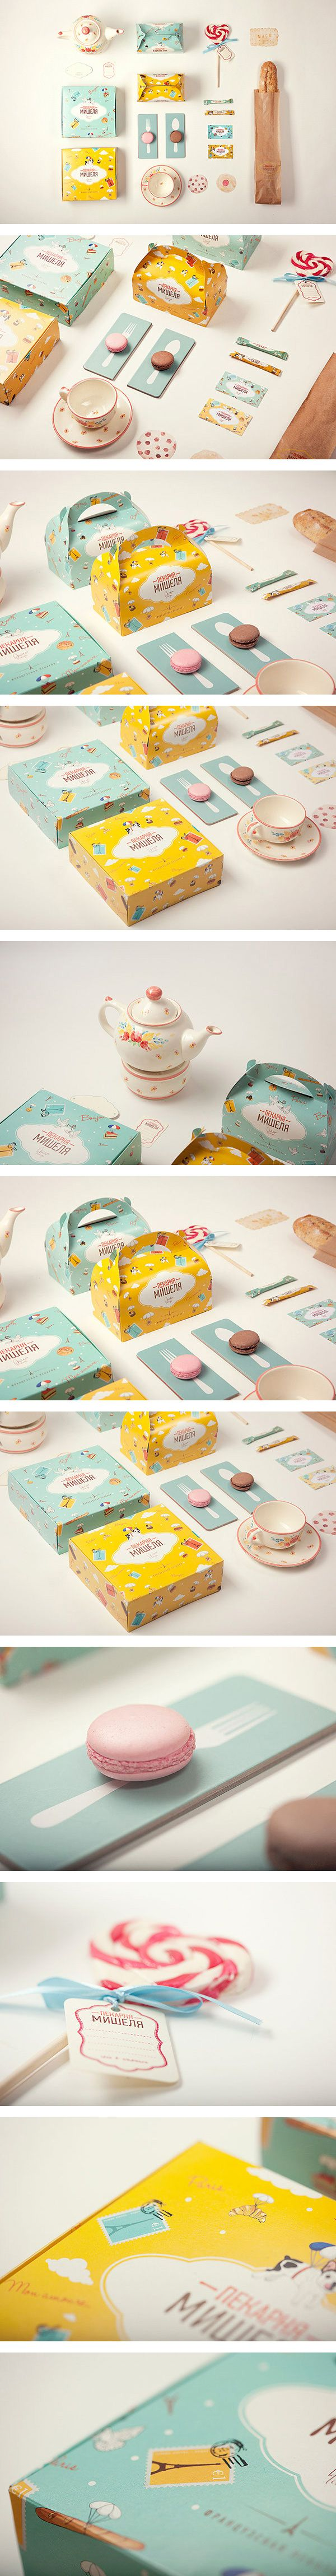 Sweet Michelle's Bakery tea and cakes #packaging